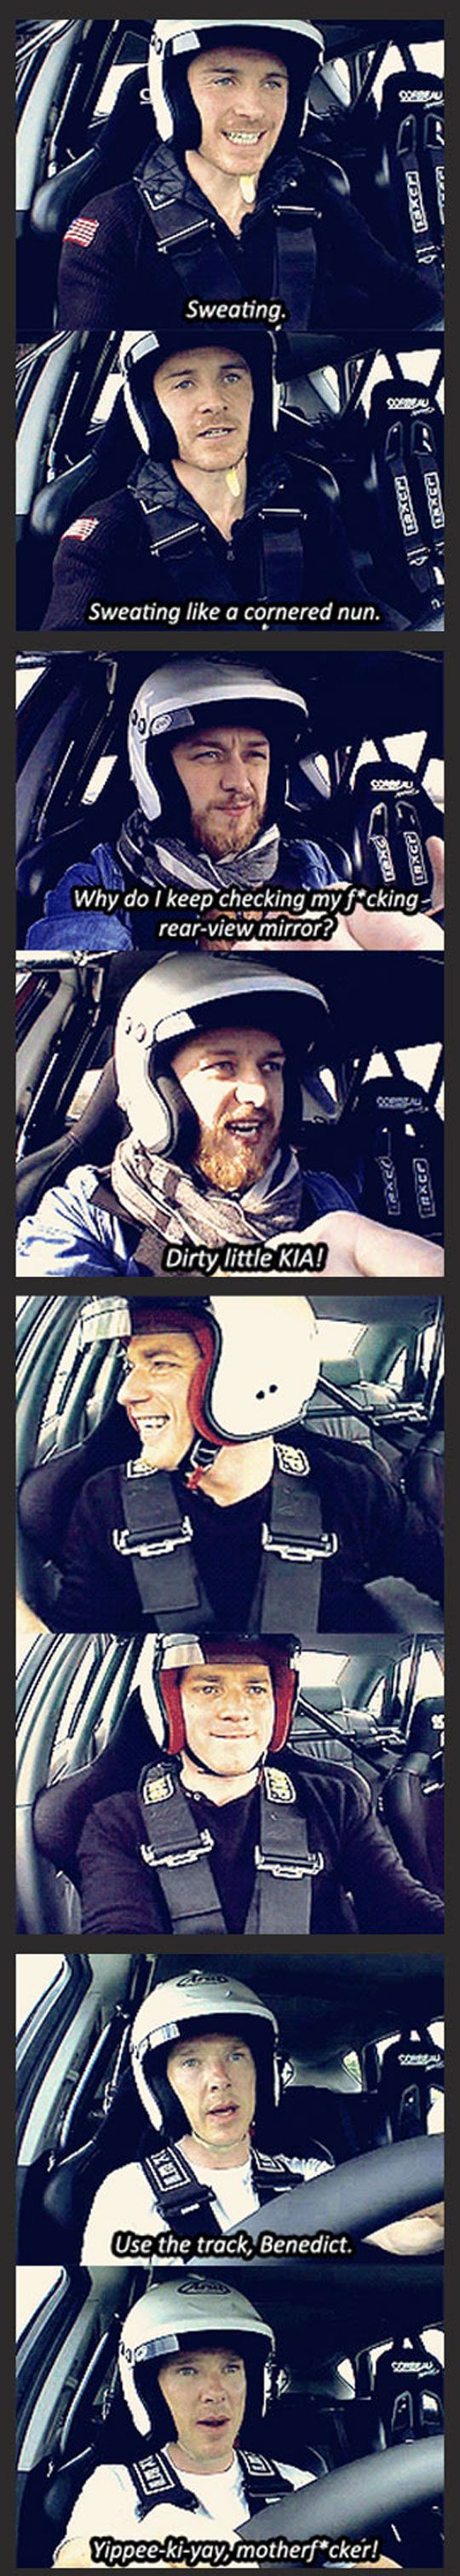 Fassbender was the best... and his reaction to his track time was classic...